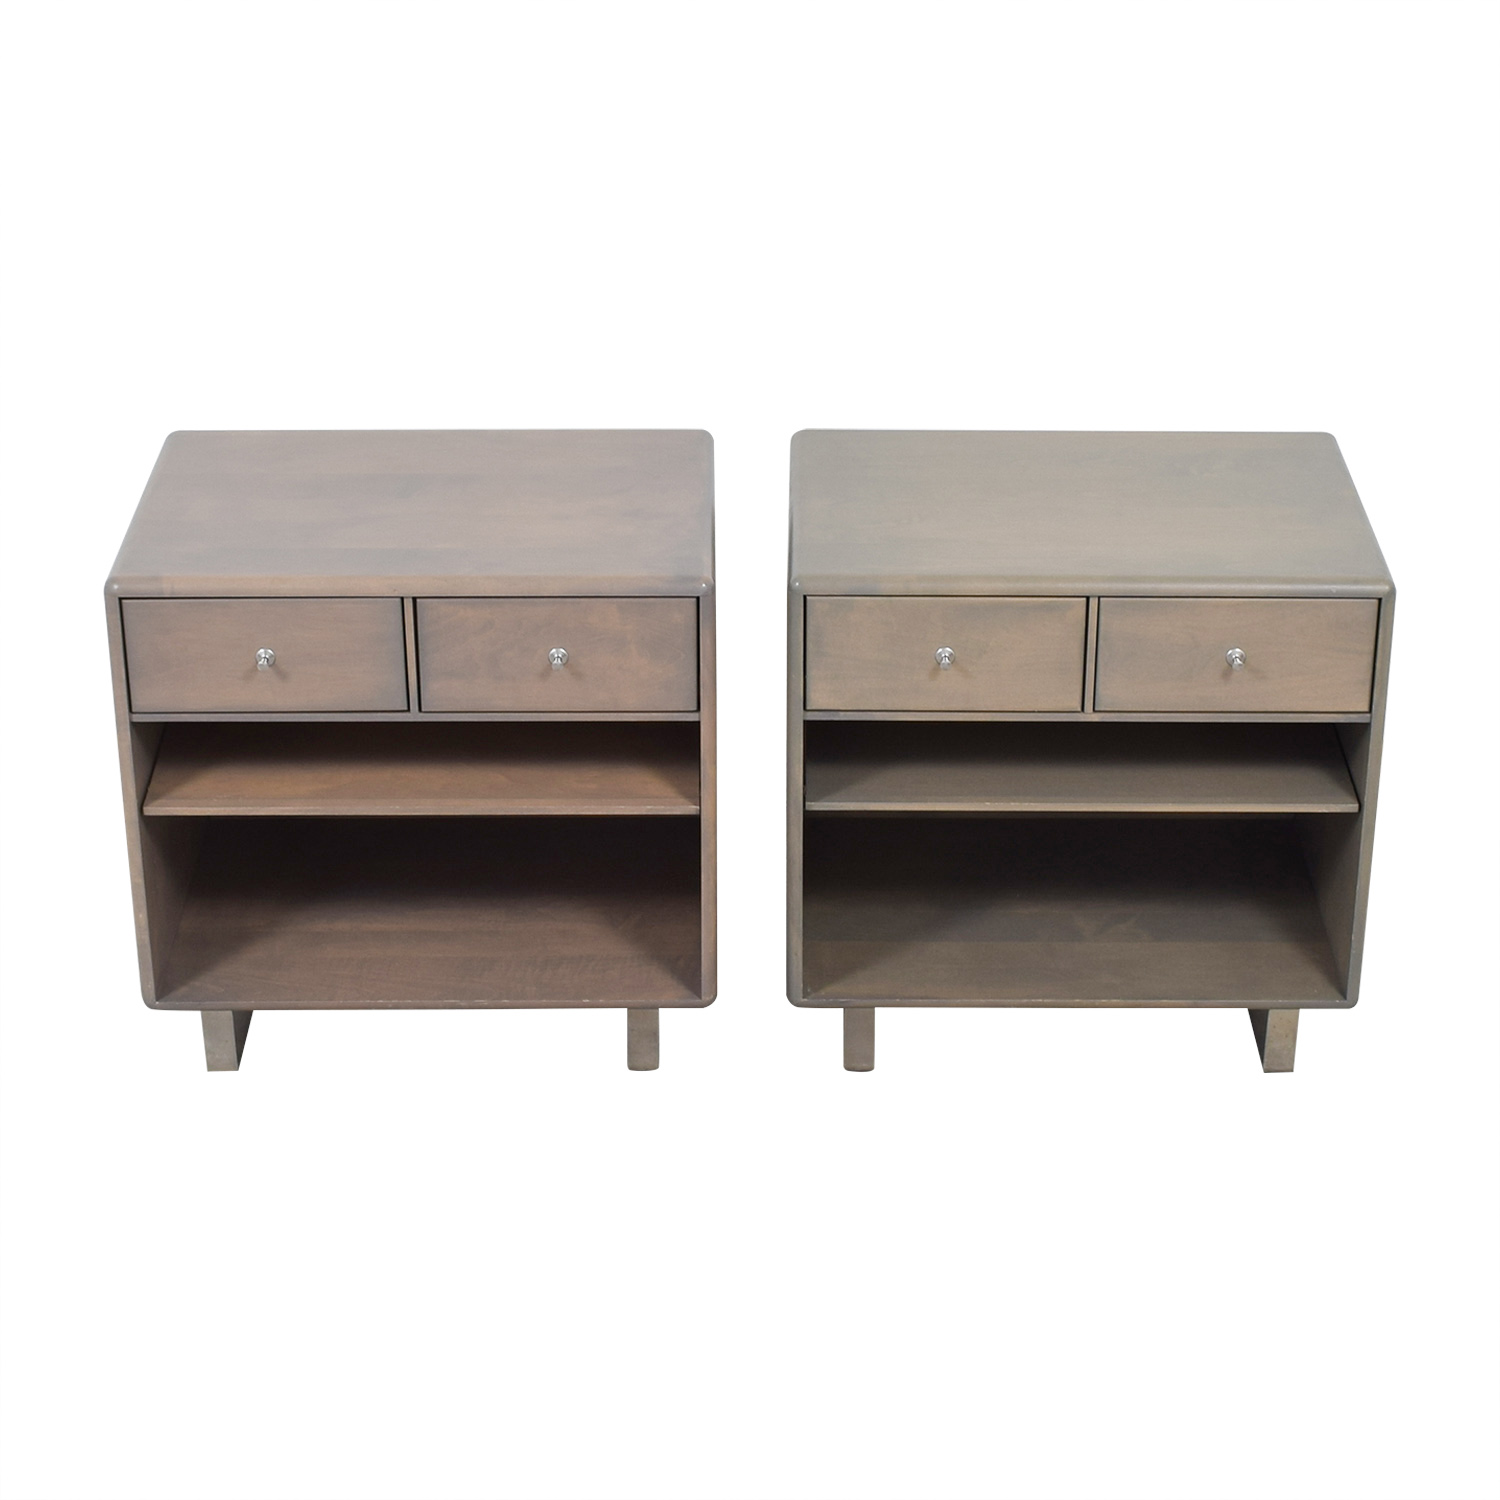 Room & Board Whitney Two-Drawer Nightstands sale